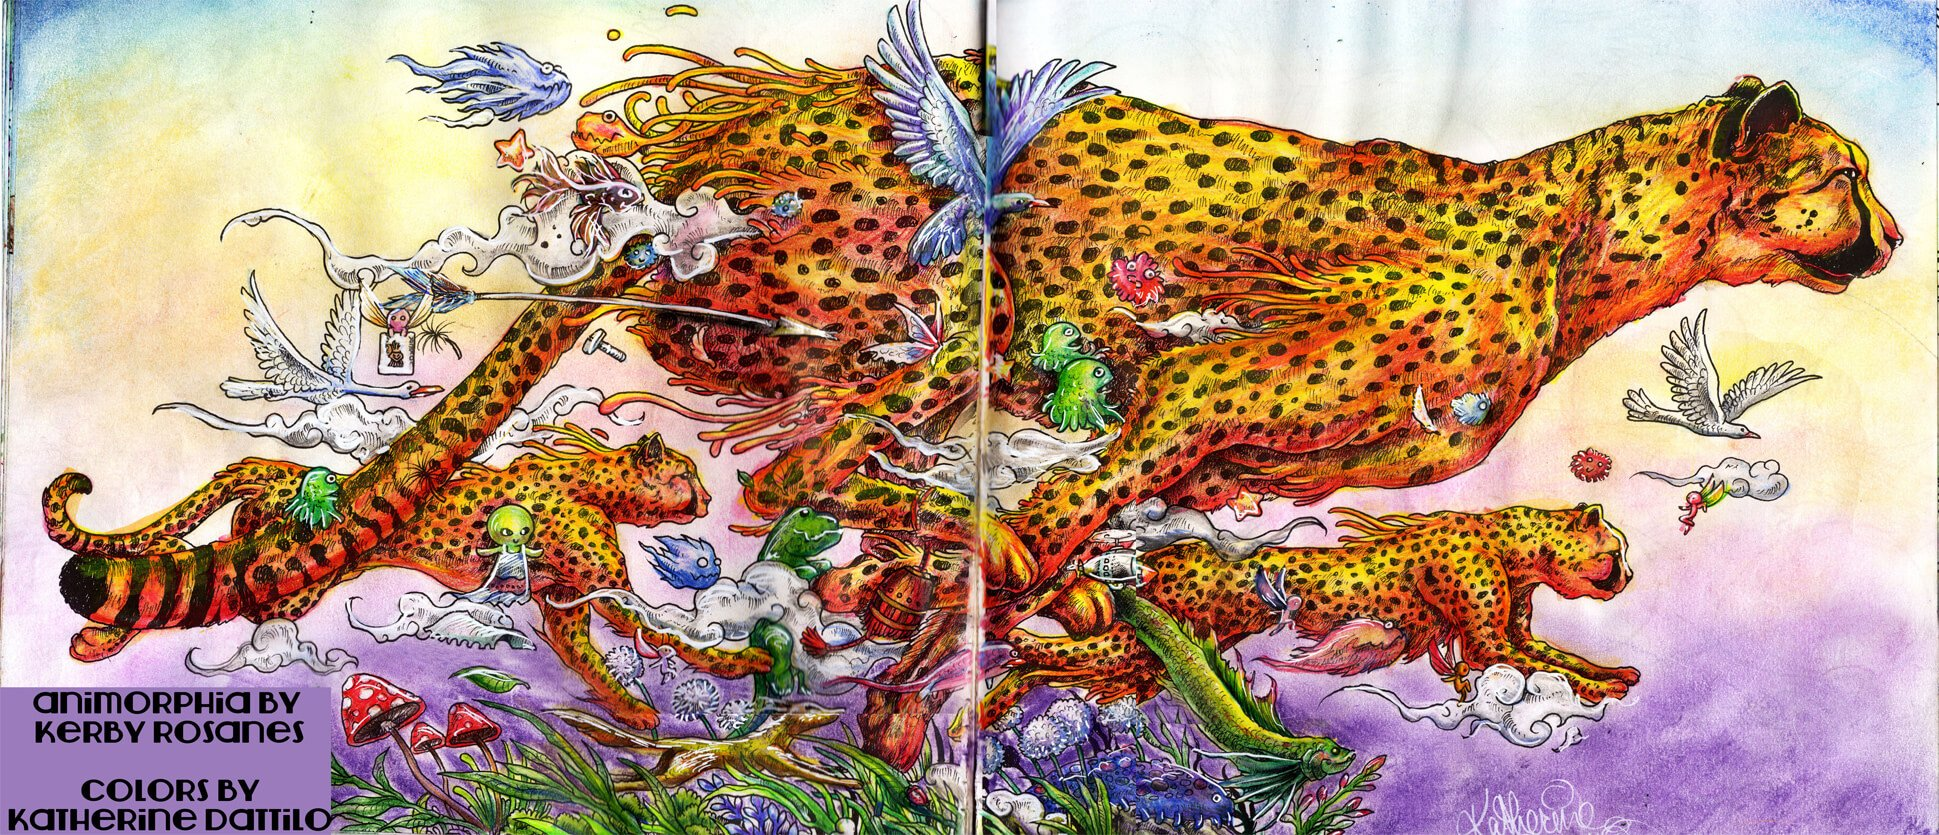 scan of cheetah, compiled